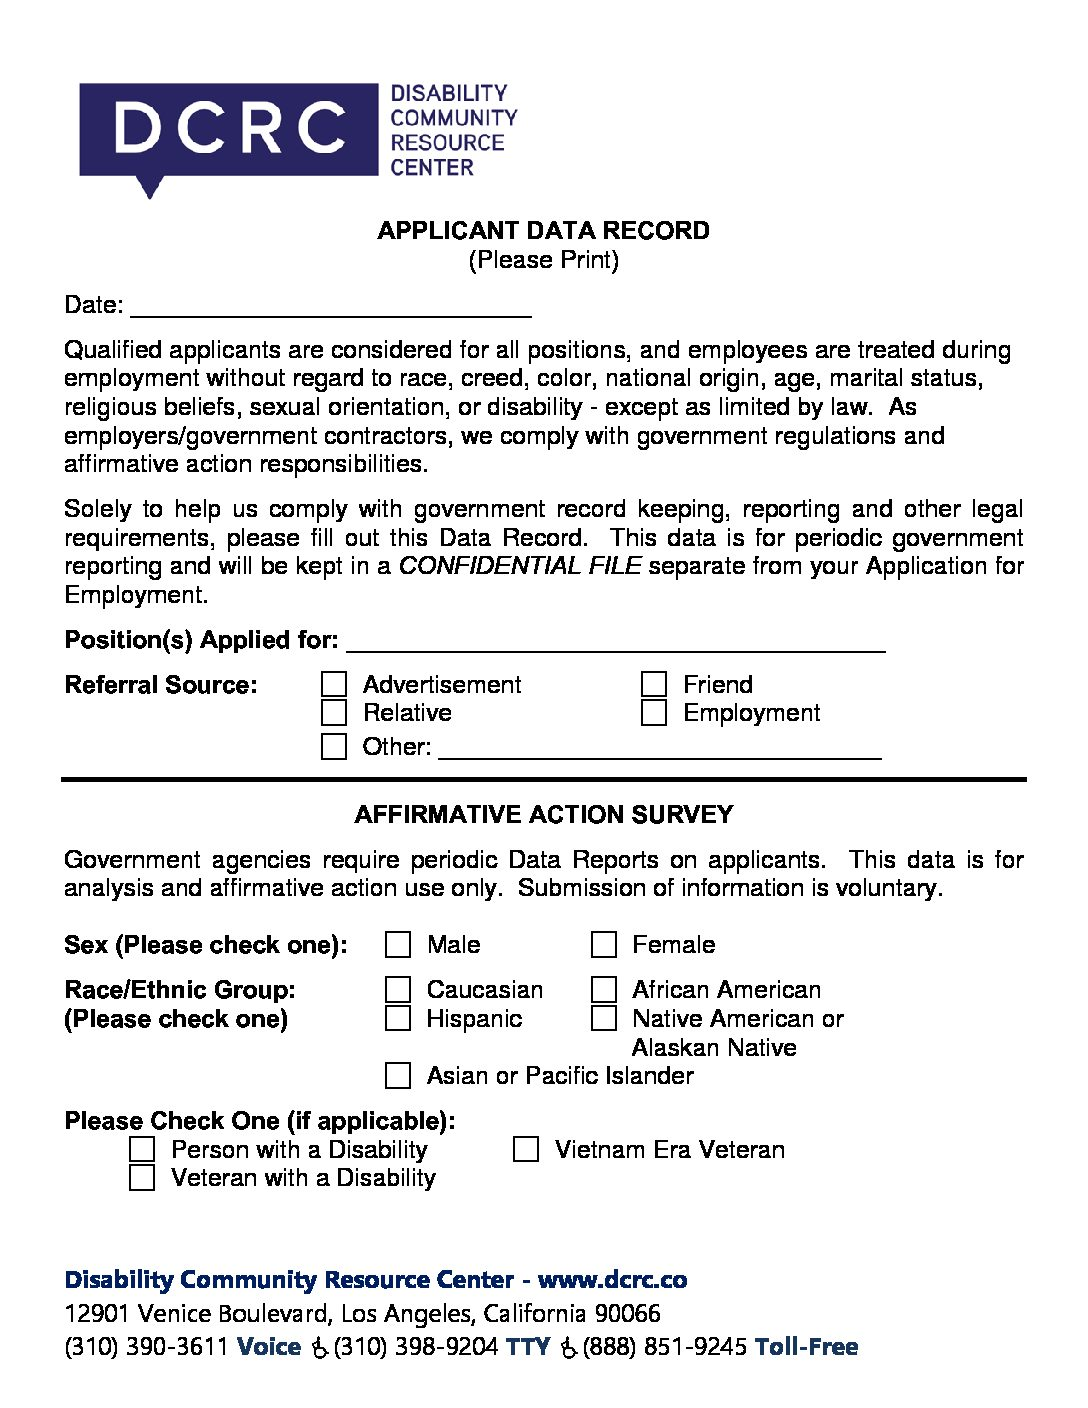 2018 dcrc applicant data record disability community resource center